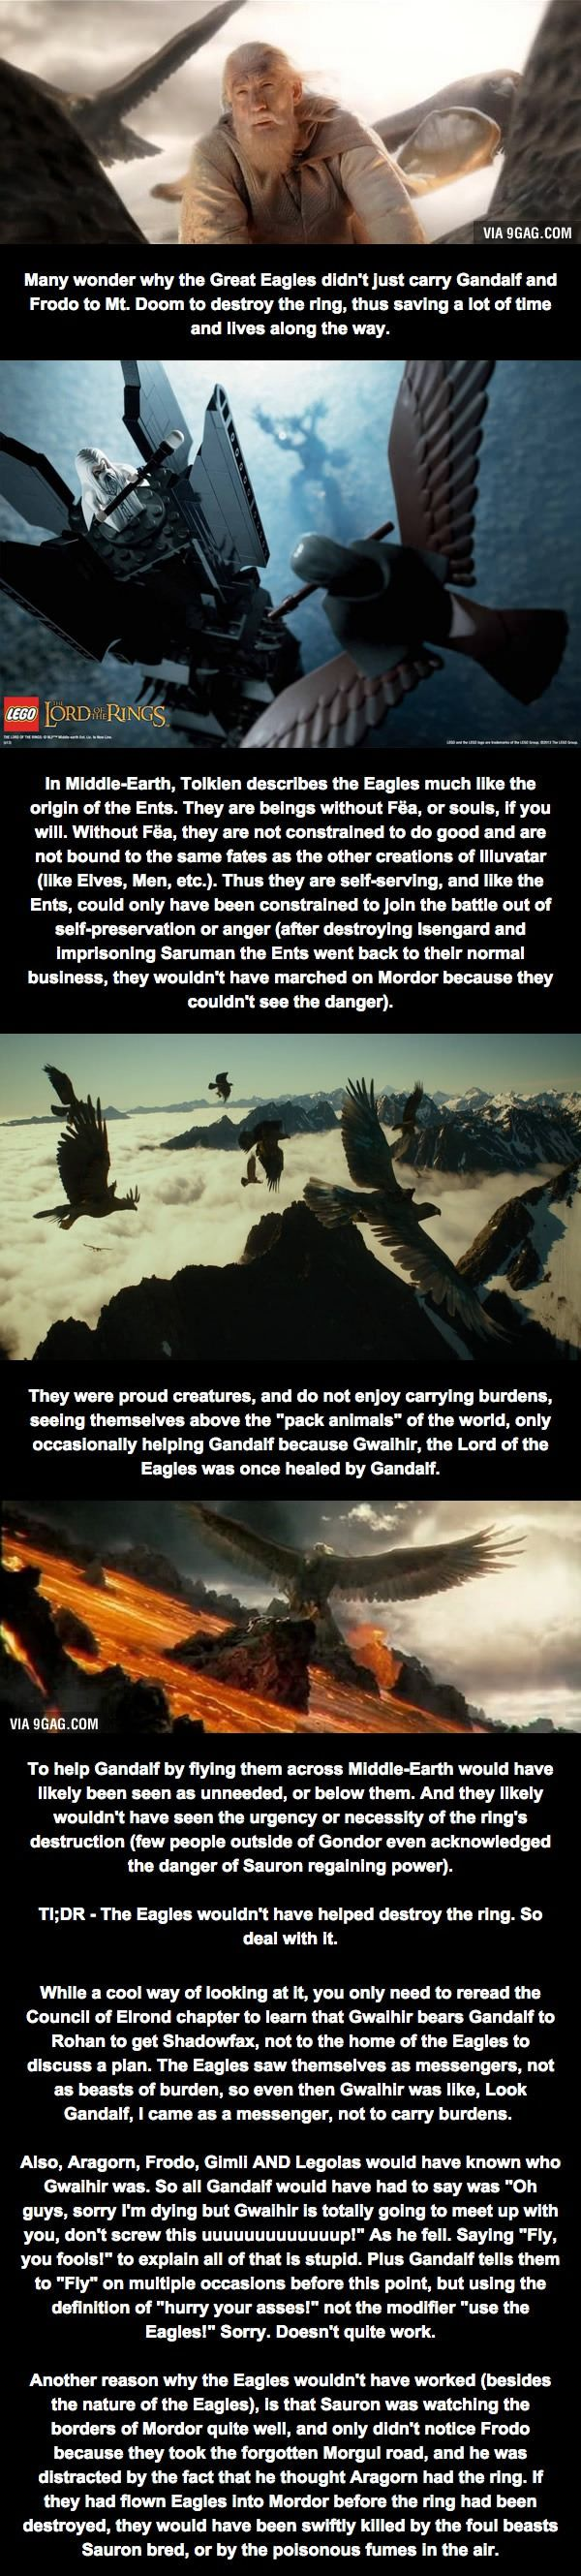 Relatively Unknown LoTR Fact (Part 1) - The Great Eagles